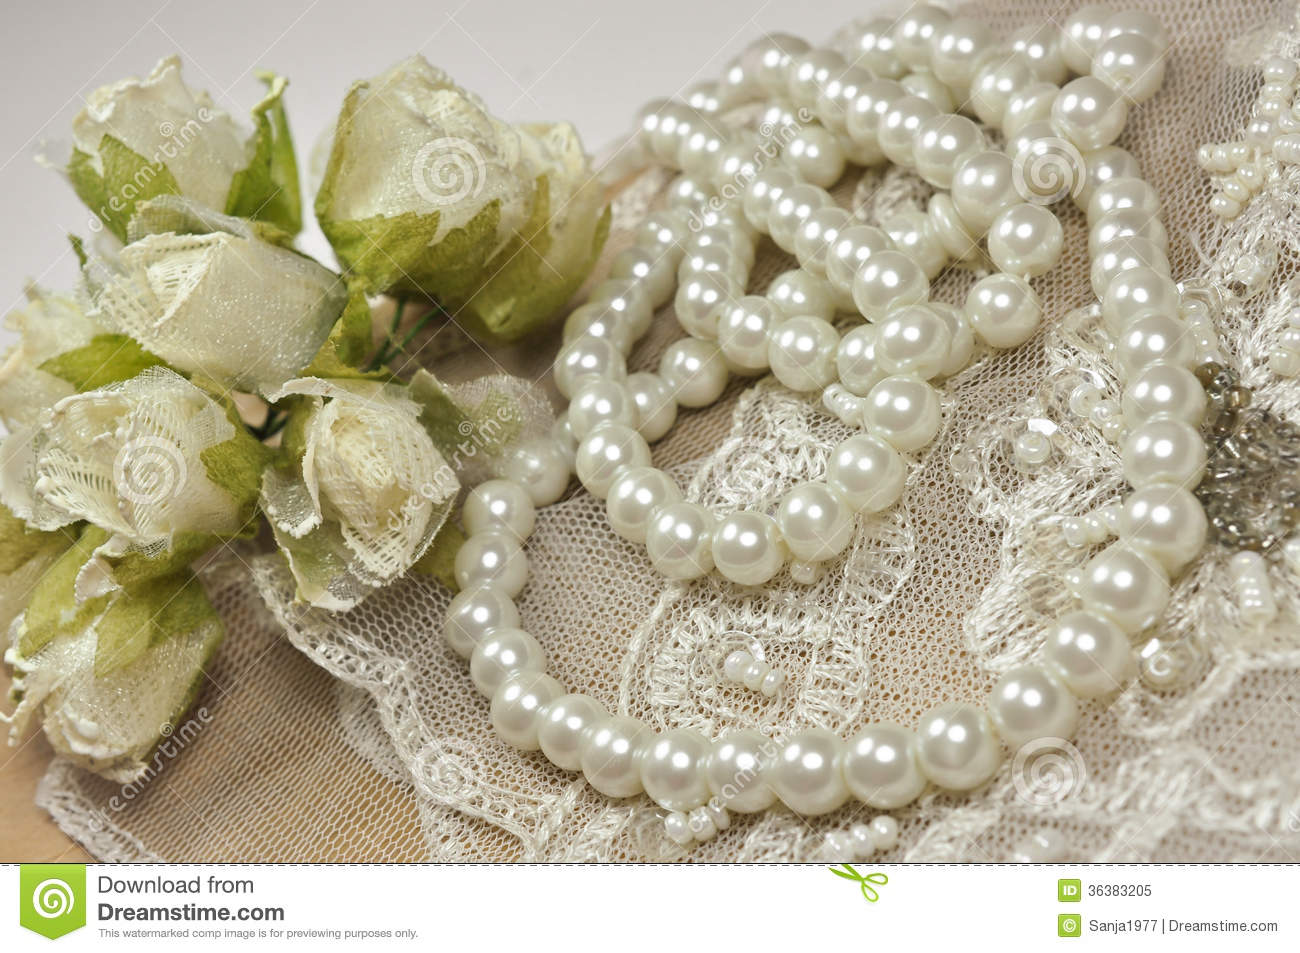 Wedding Background With Decoration Accessories, Lace And Pearls